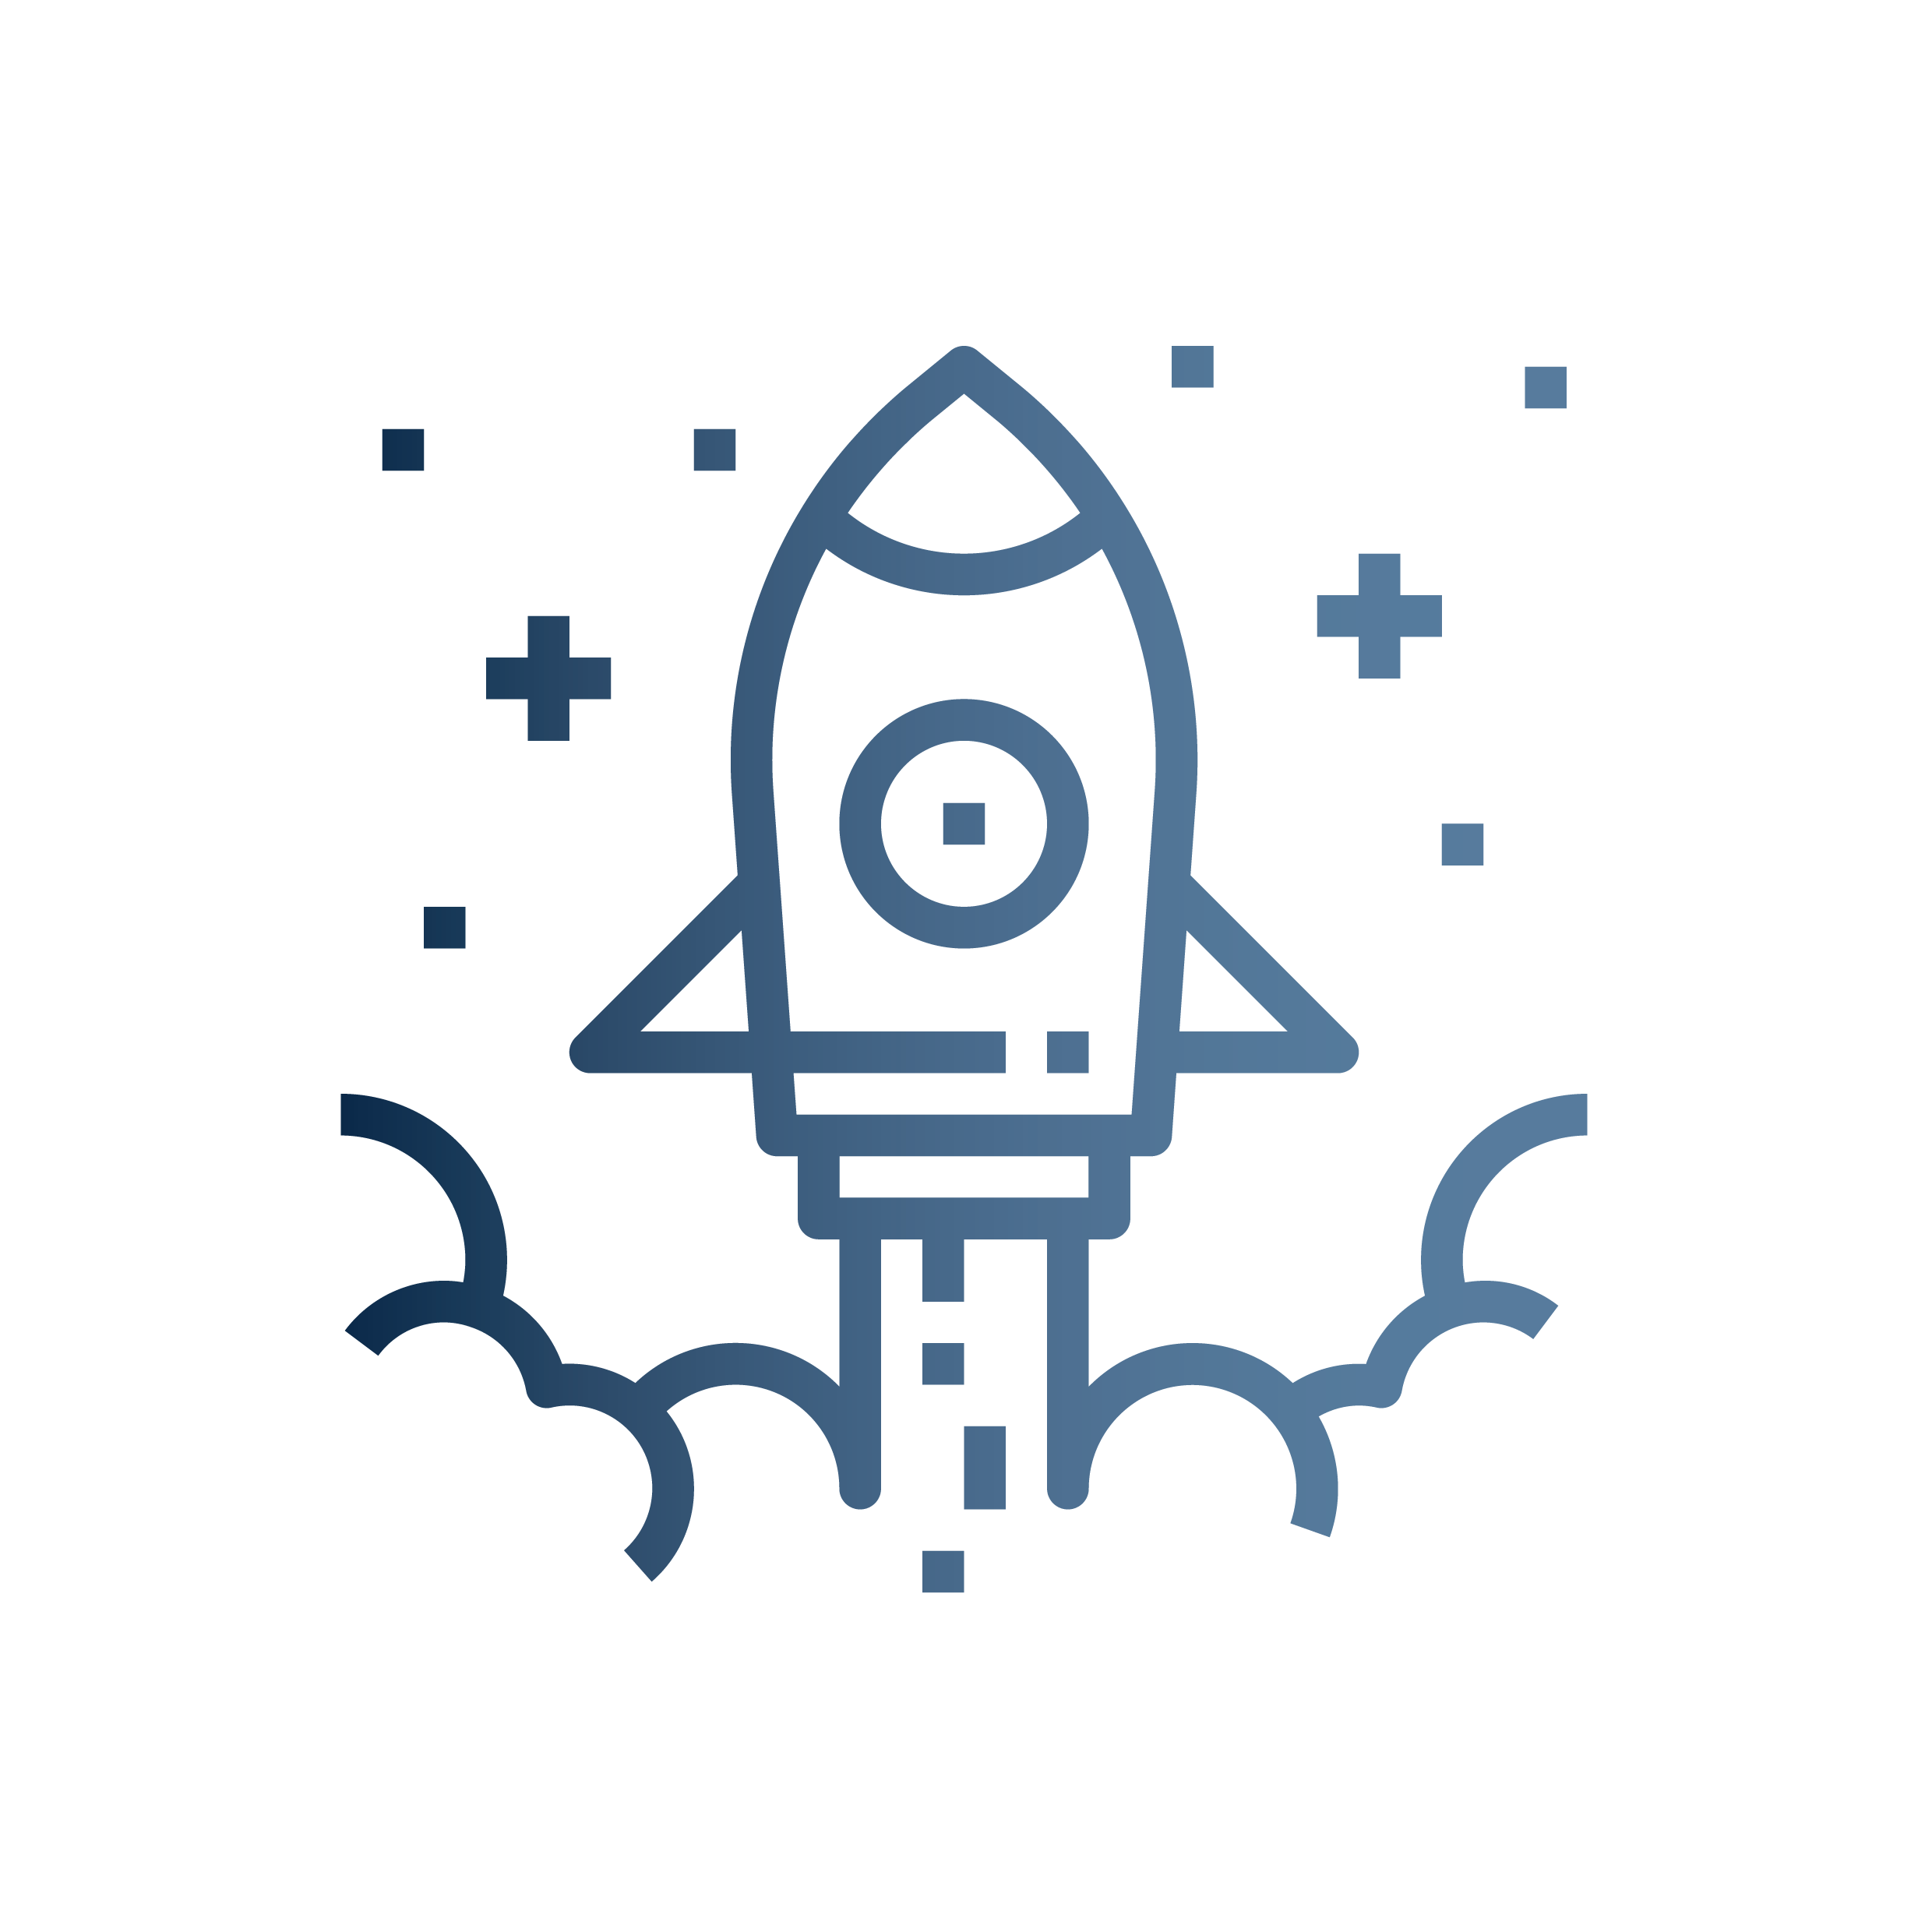 1 lift off - With your goals and constrains in mind, we help you deploy your artificial intelligence IP in the most cost-efficient way. We help you select and optimize infrastructure for hosting your AI/ML system, and assist with maintenance and support.